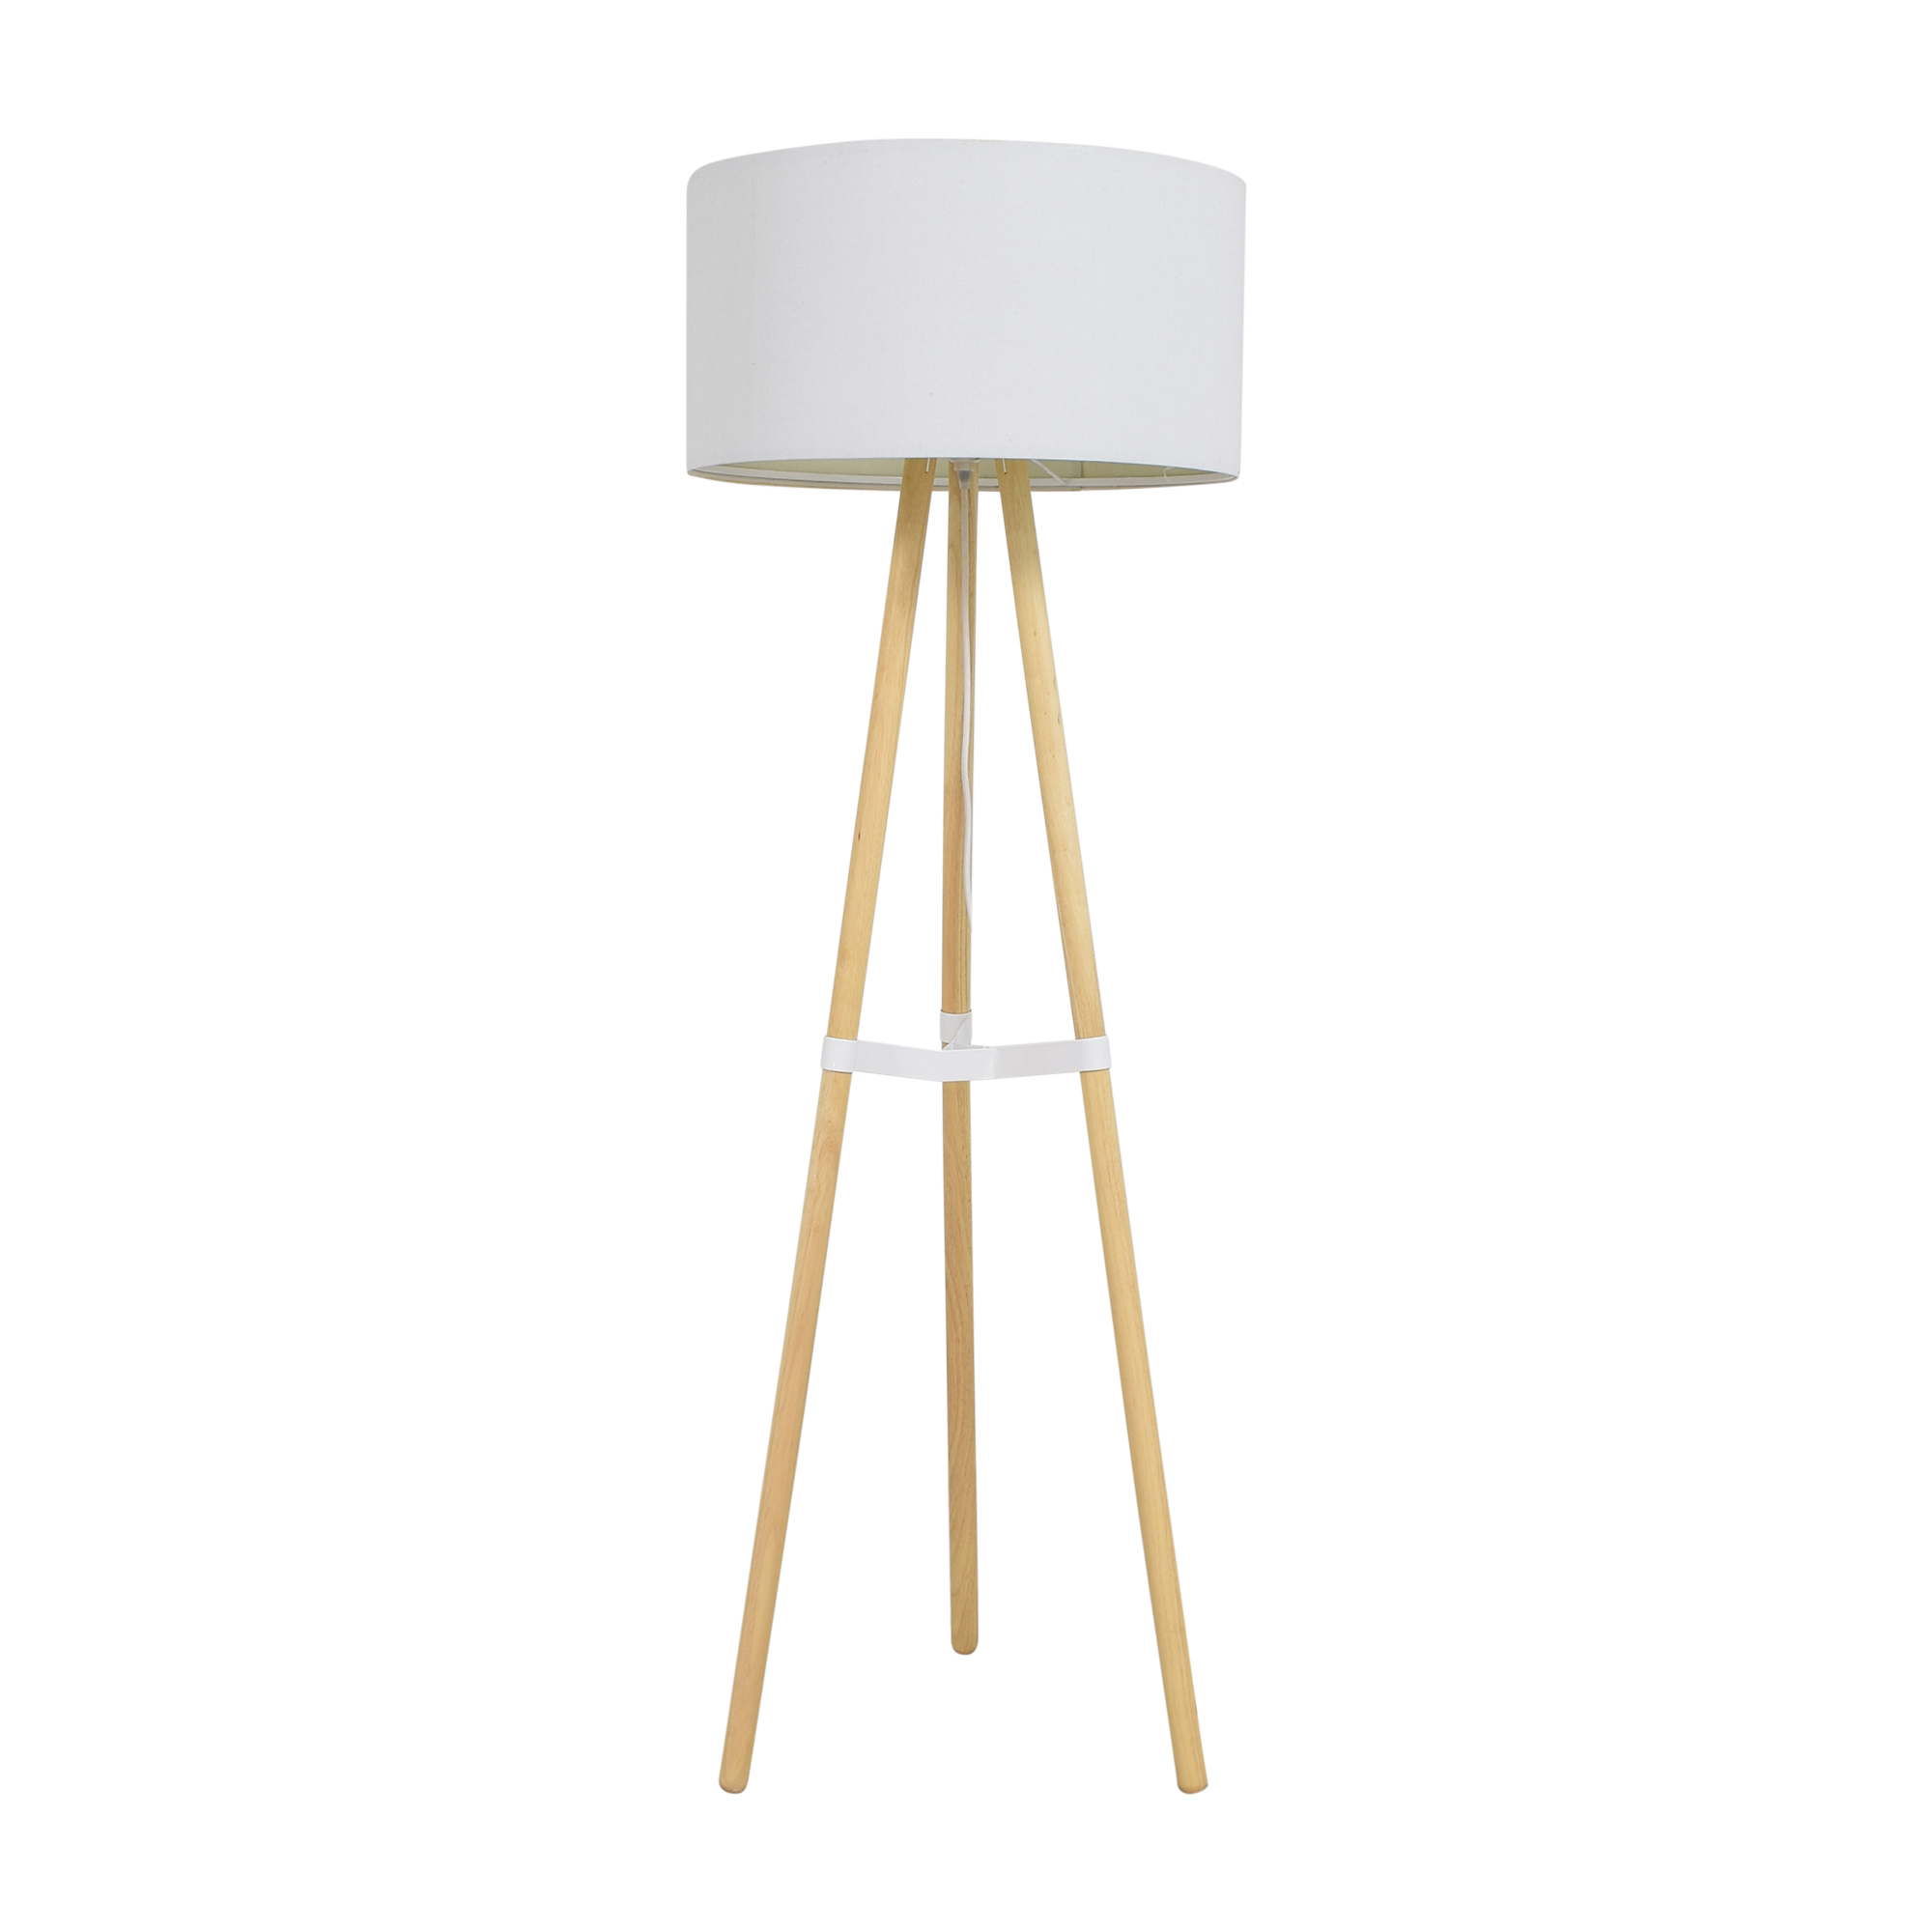 buy Gus Modern Gus x Fab Floor Lamp Gus Modern Decor